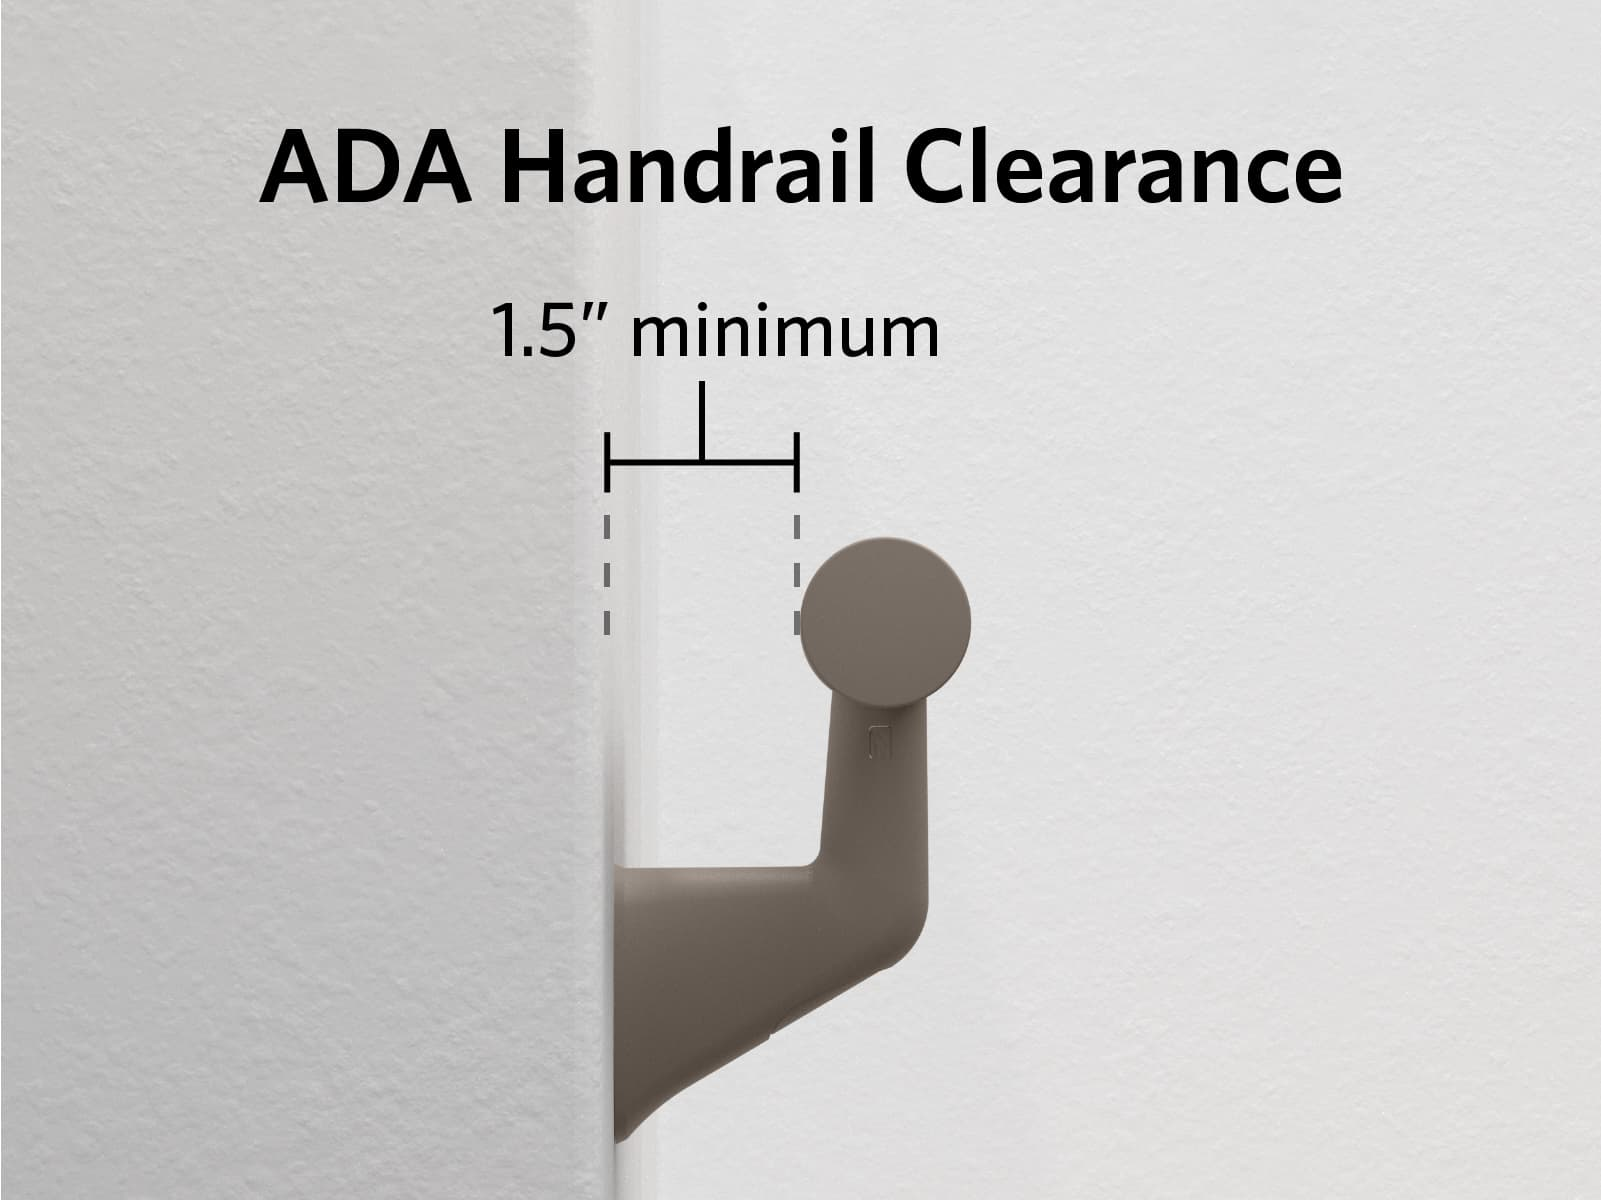 A handrail attached to a wall with a line measuring the 1.5 inch minimum clearance between it and the wall